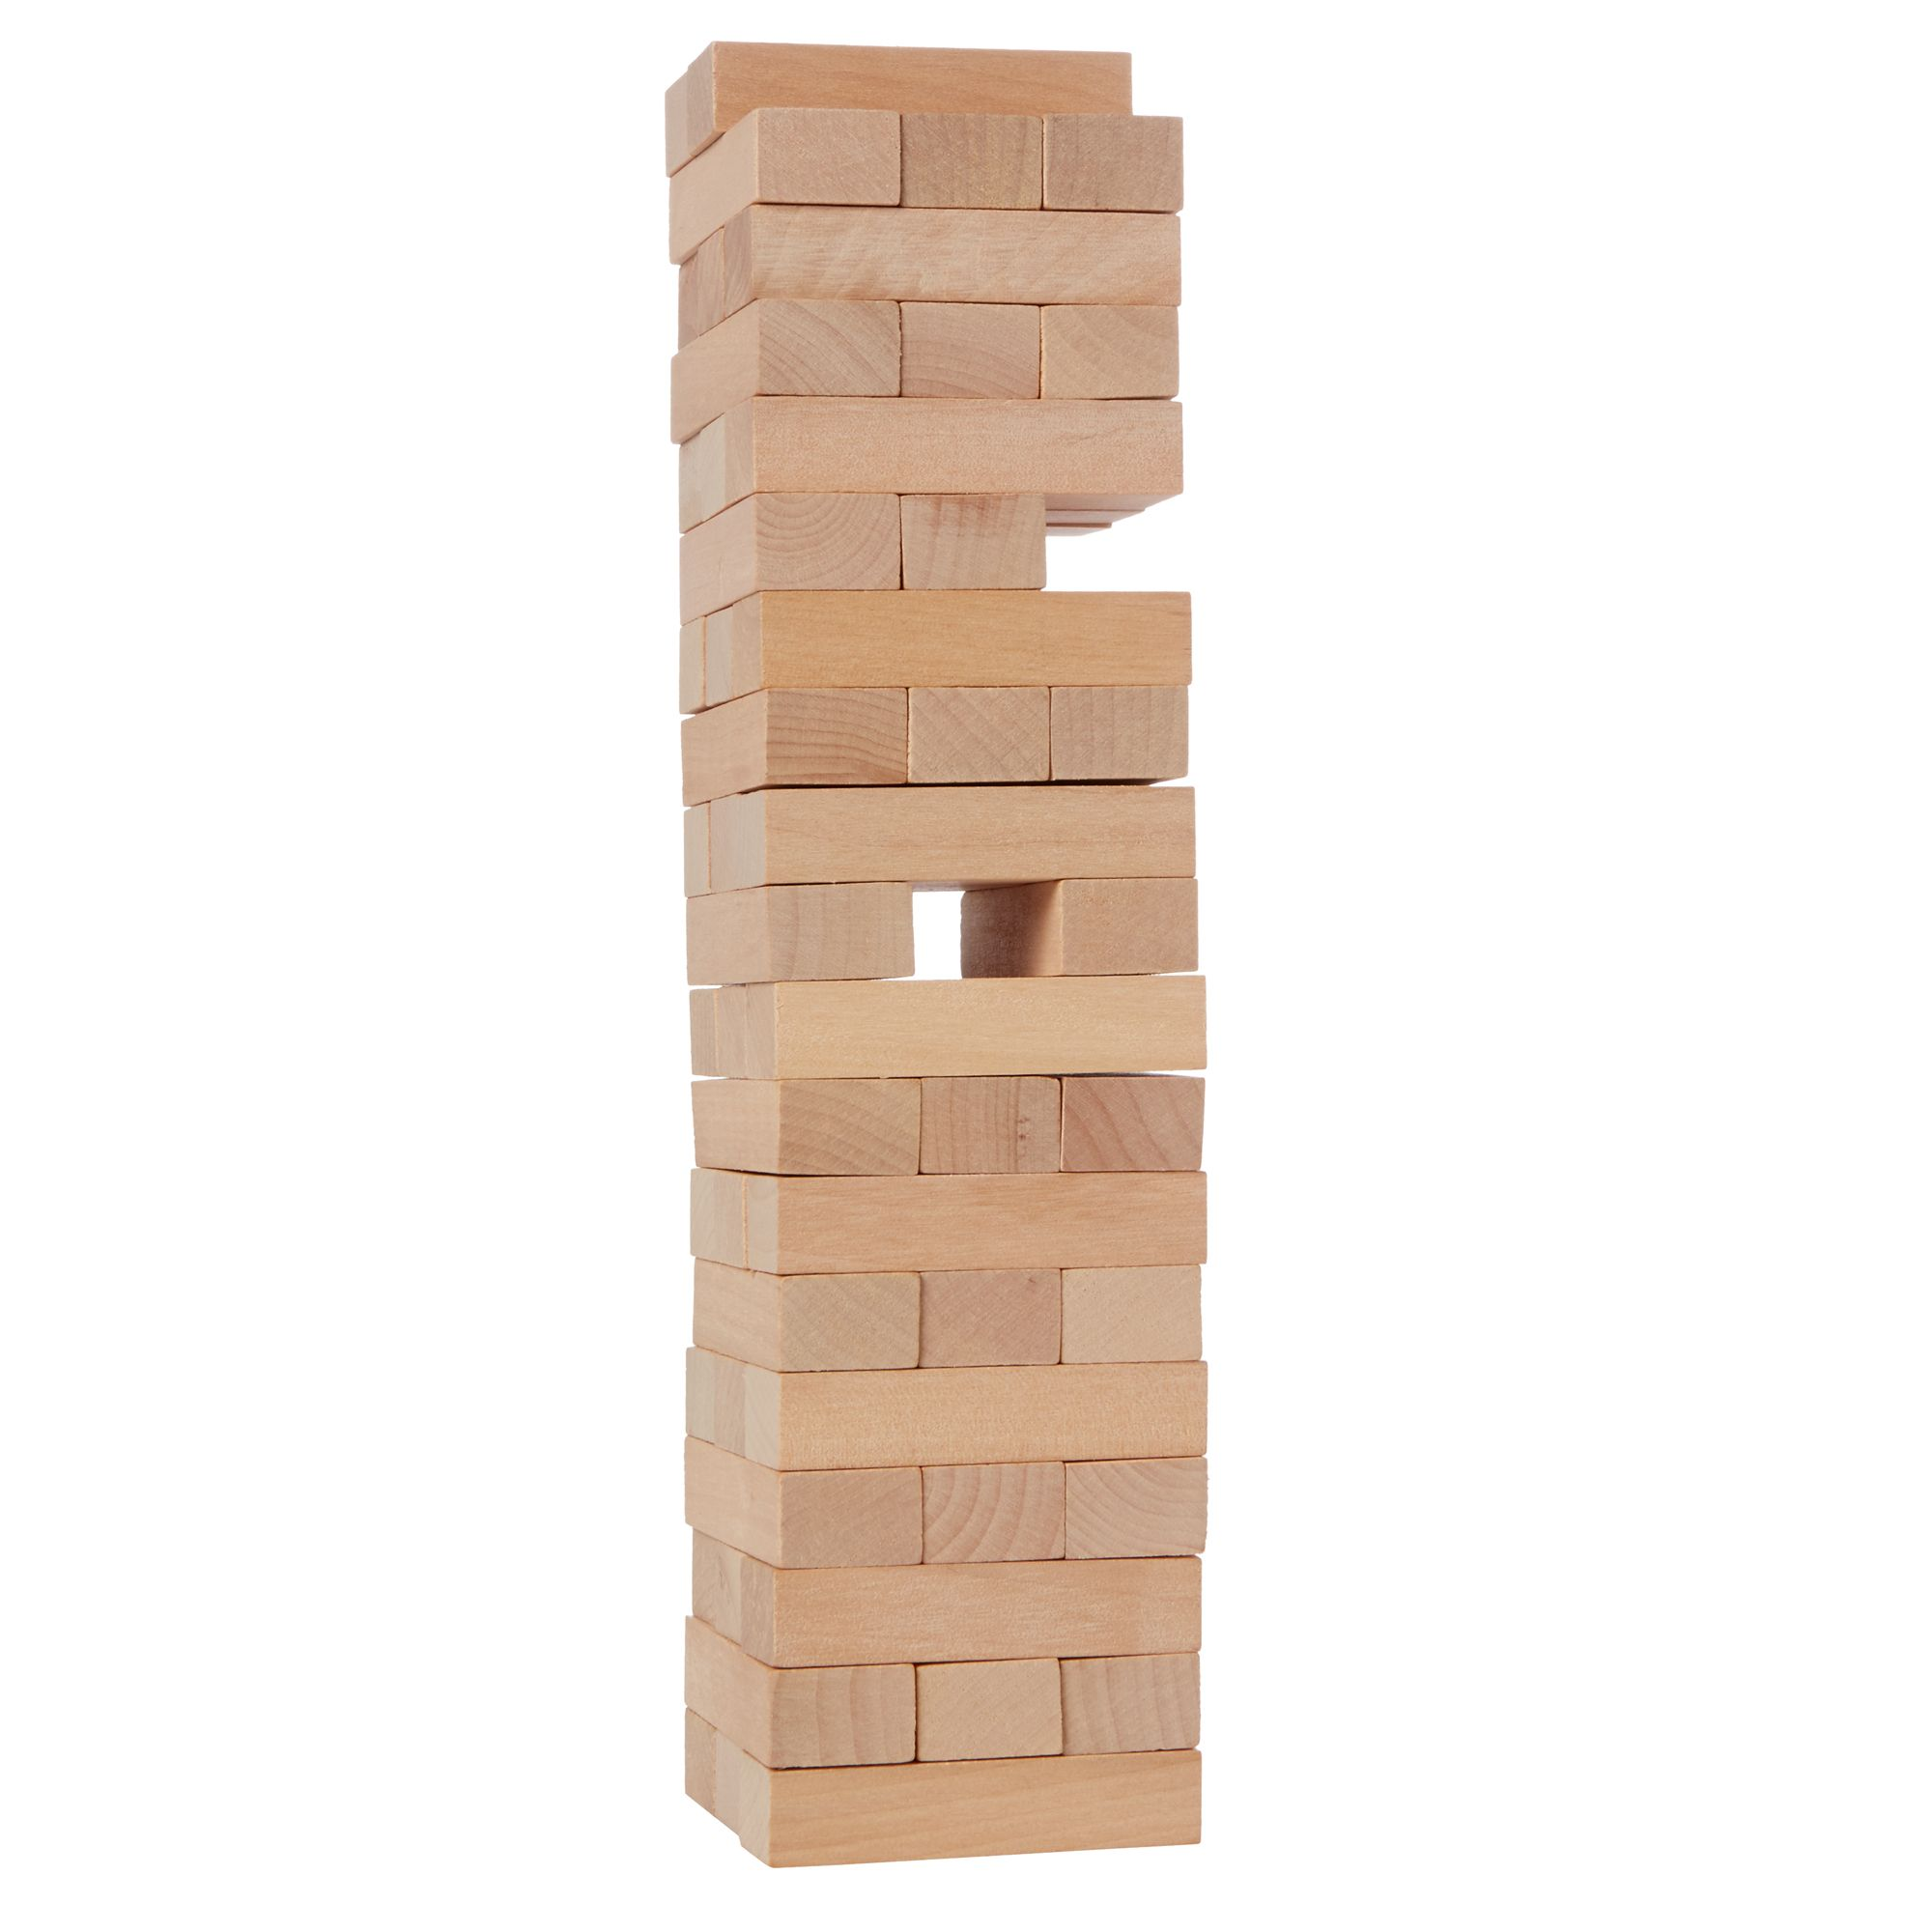 Hamleys Wooden Tip Tower